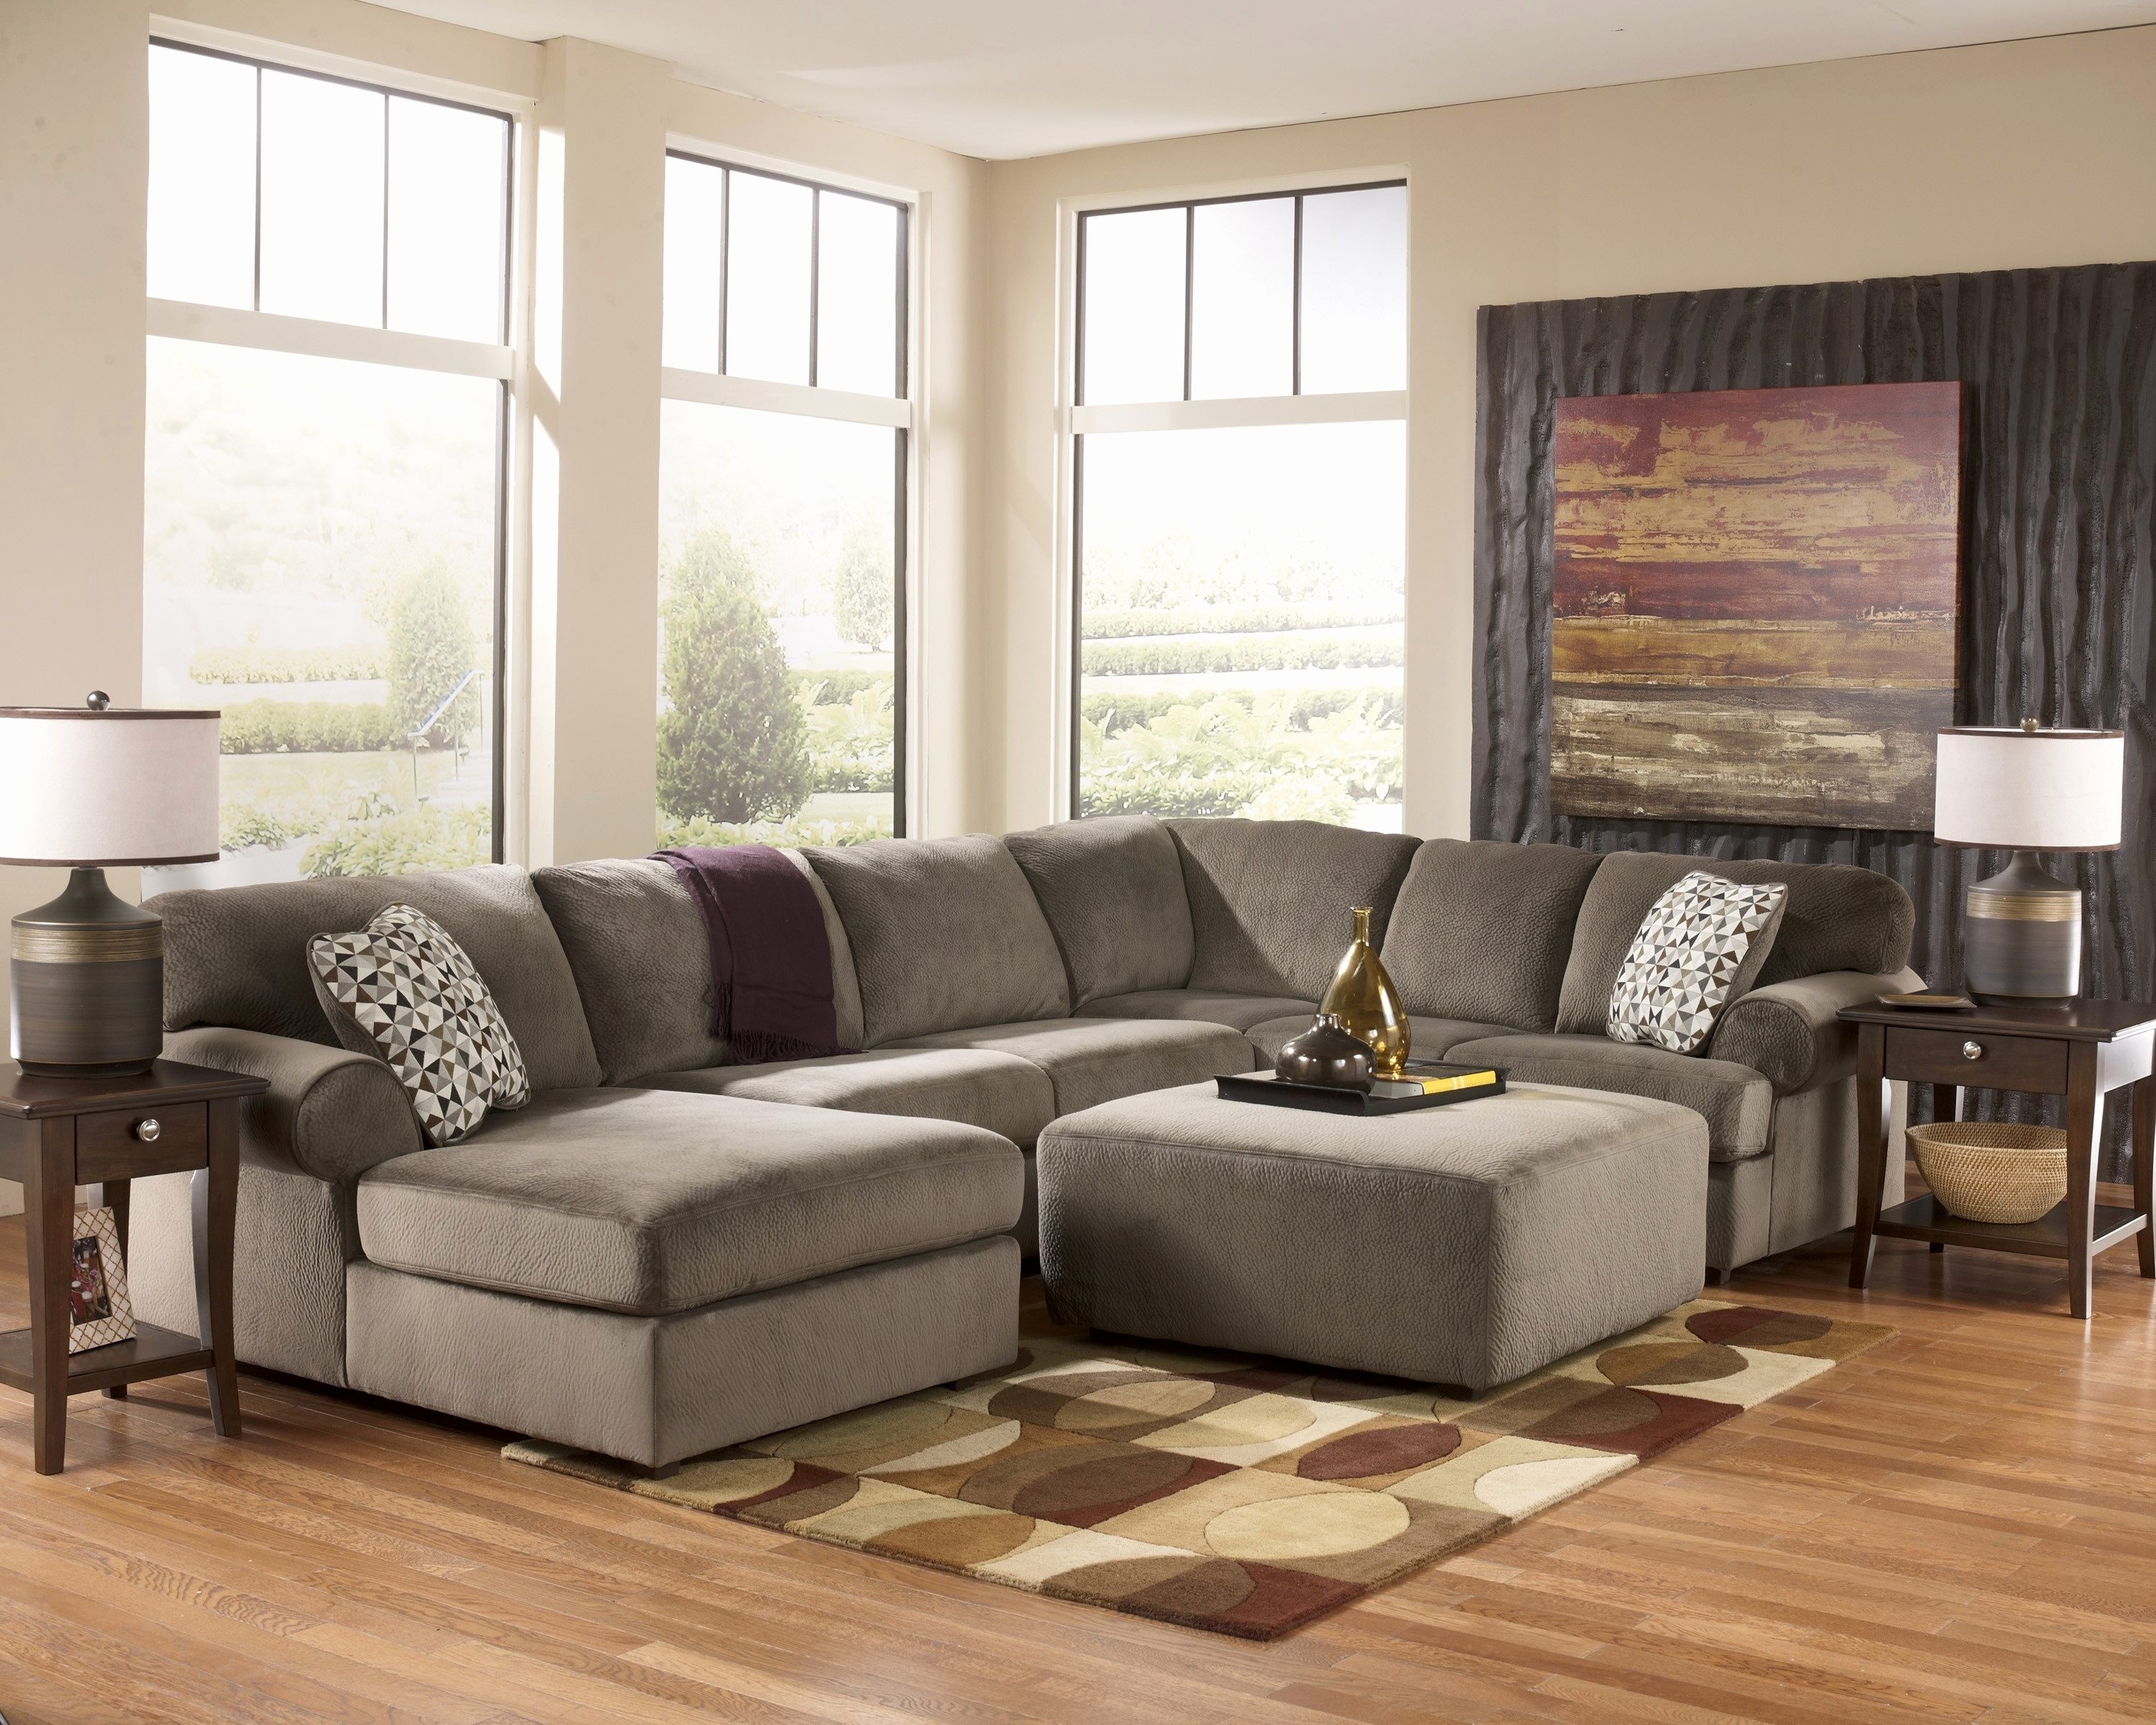 Furniture : Extra Large Sectional Sofa With Chaise And Ottoman U For Most Recently Released Sectionals With Oversized Ottoman (View 3 of 20)